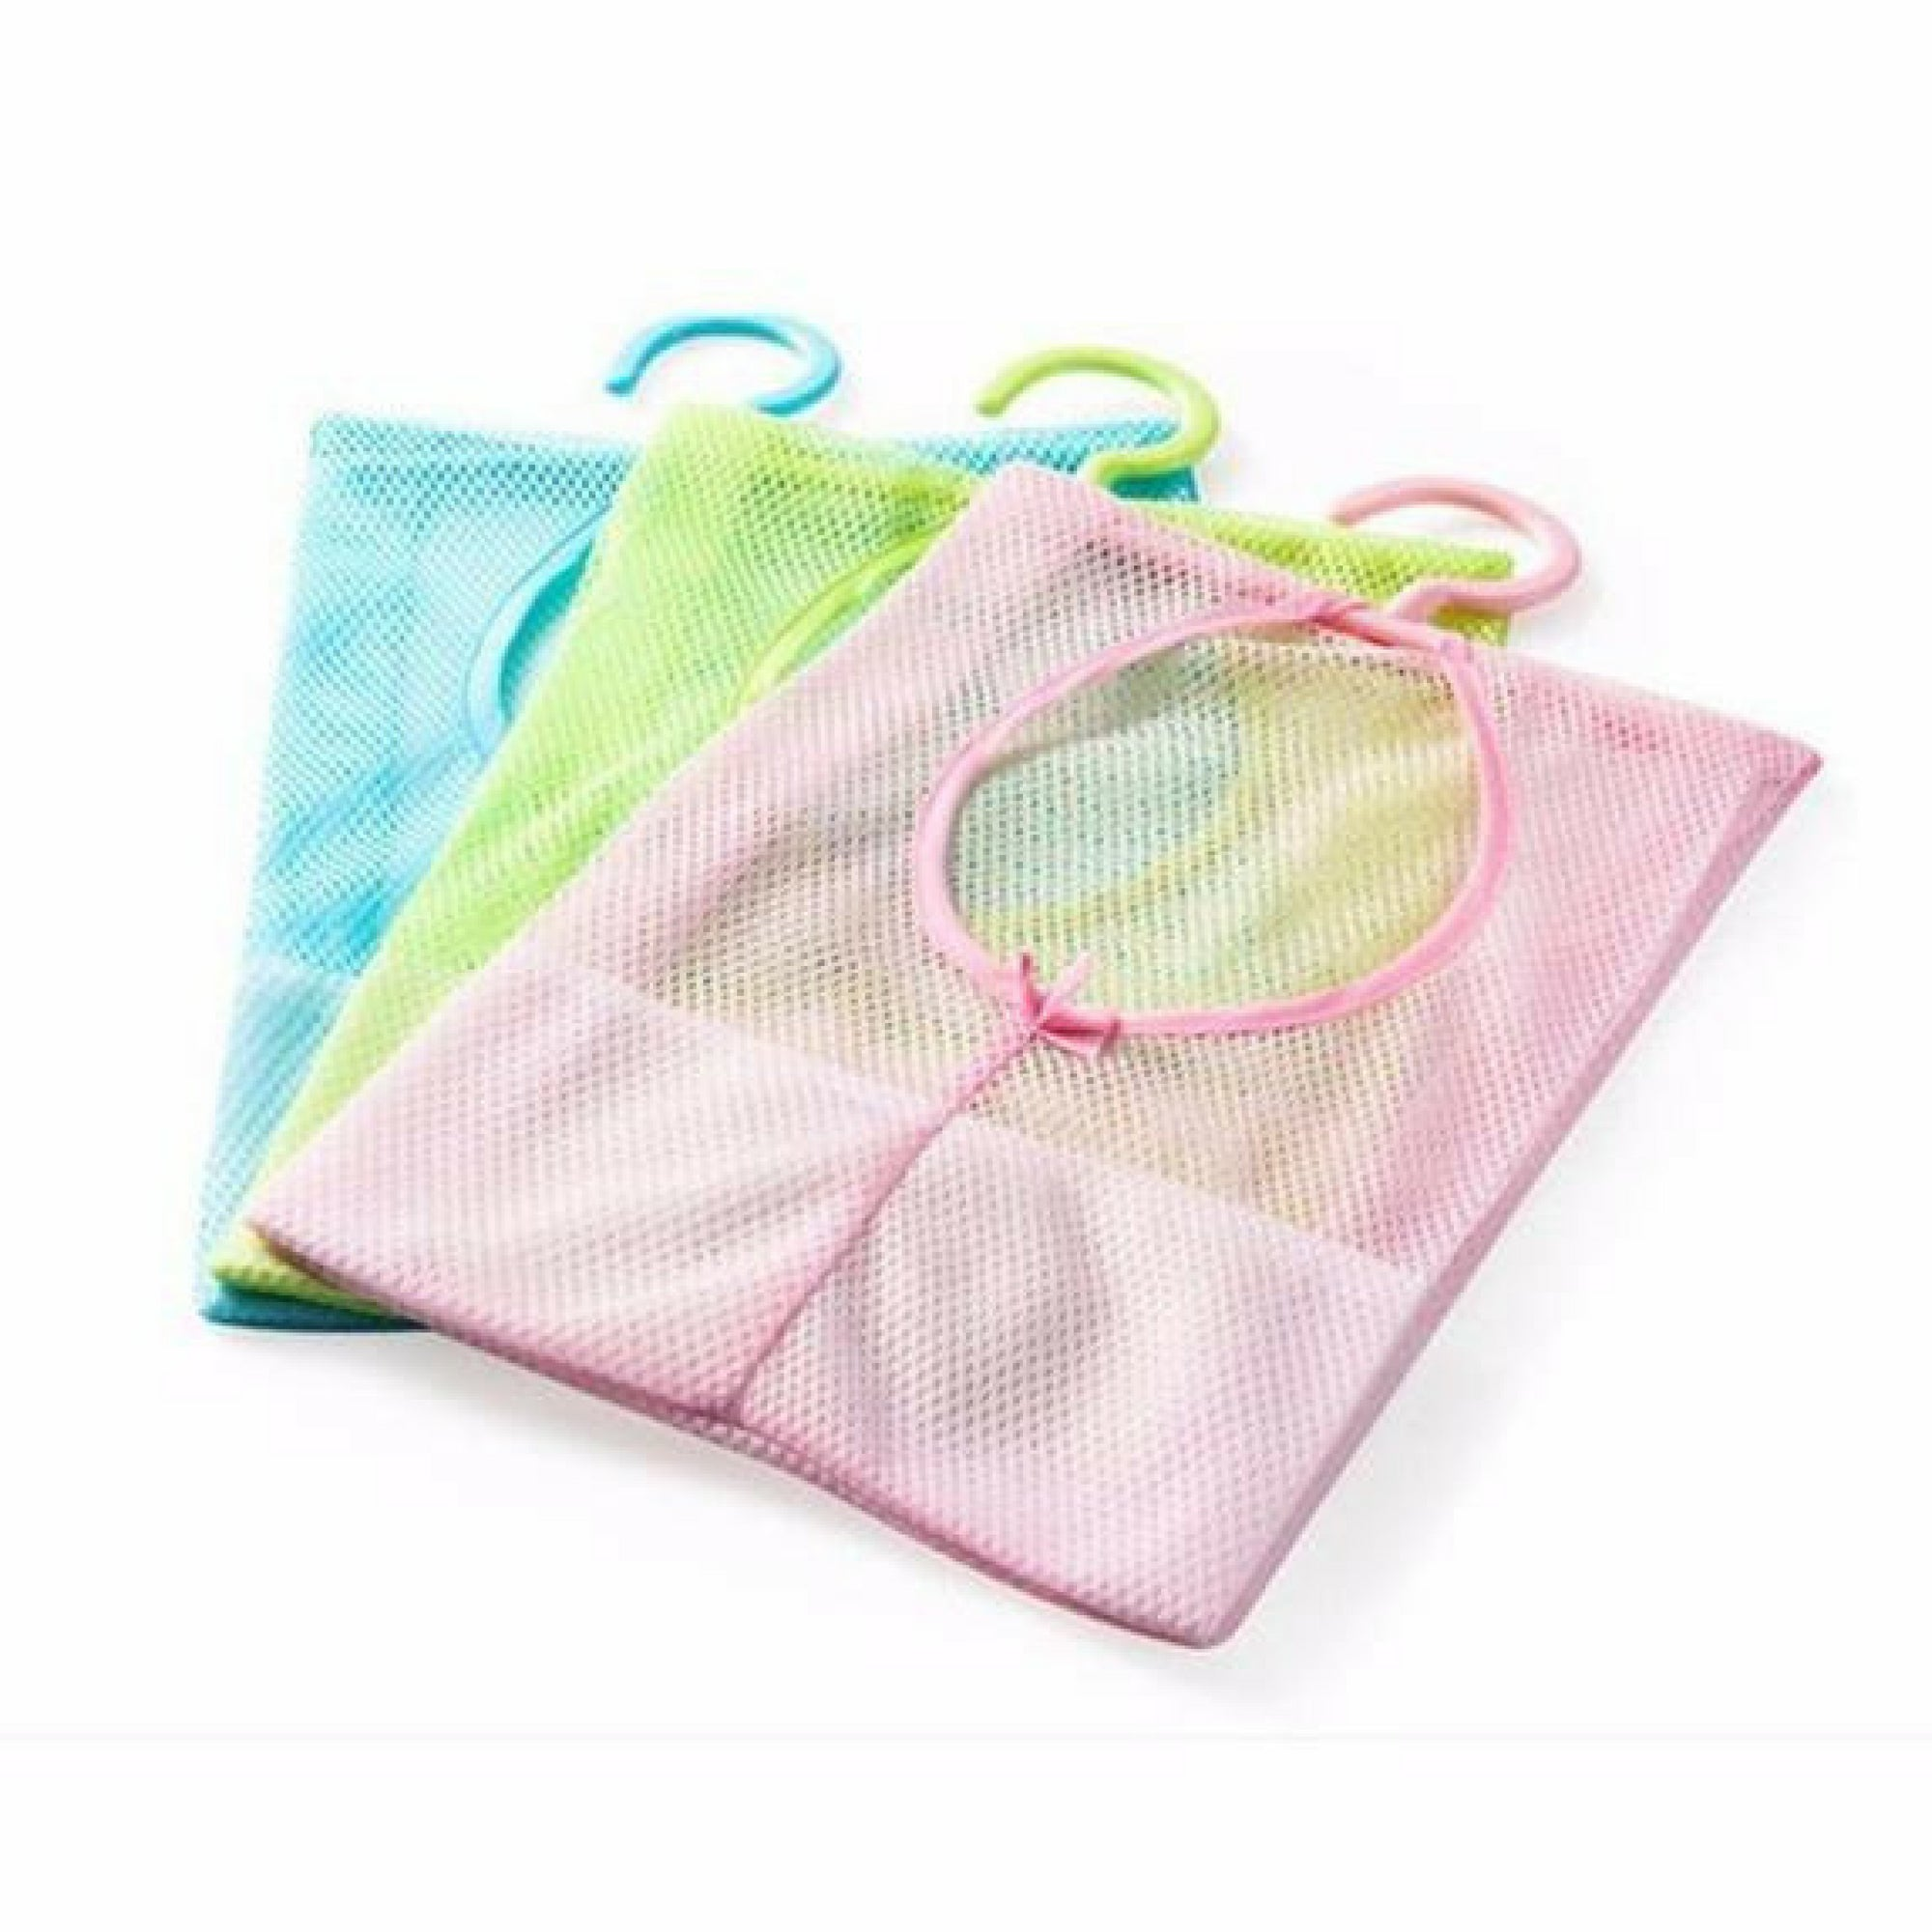 Multi-function Mesh Clothes Organizer